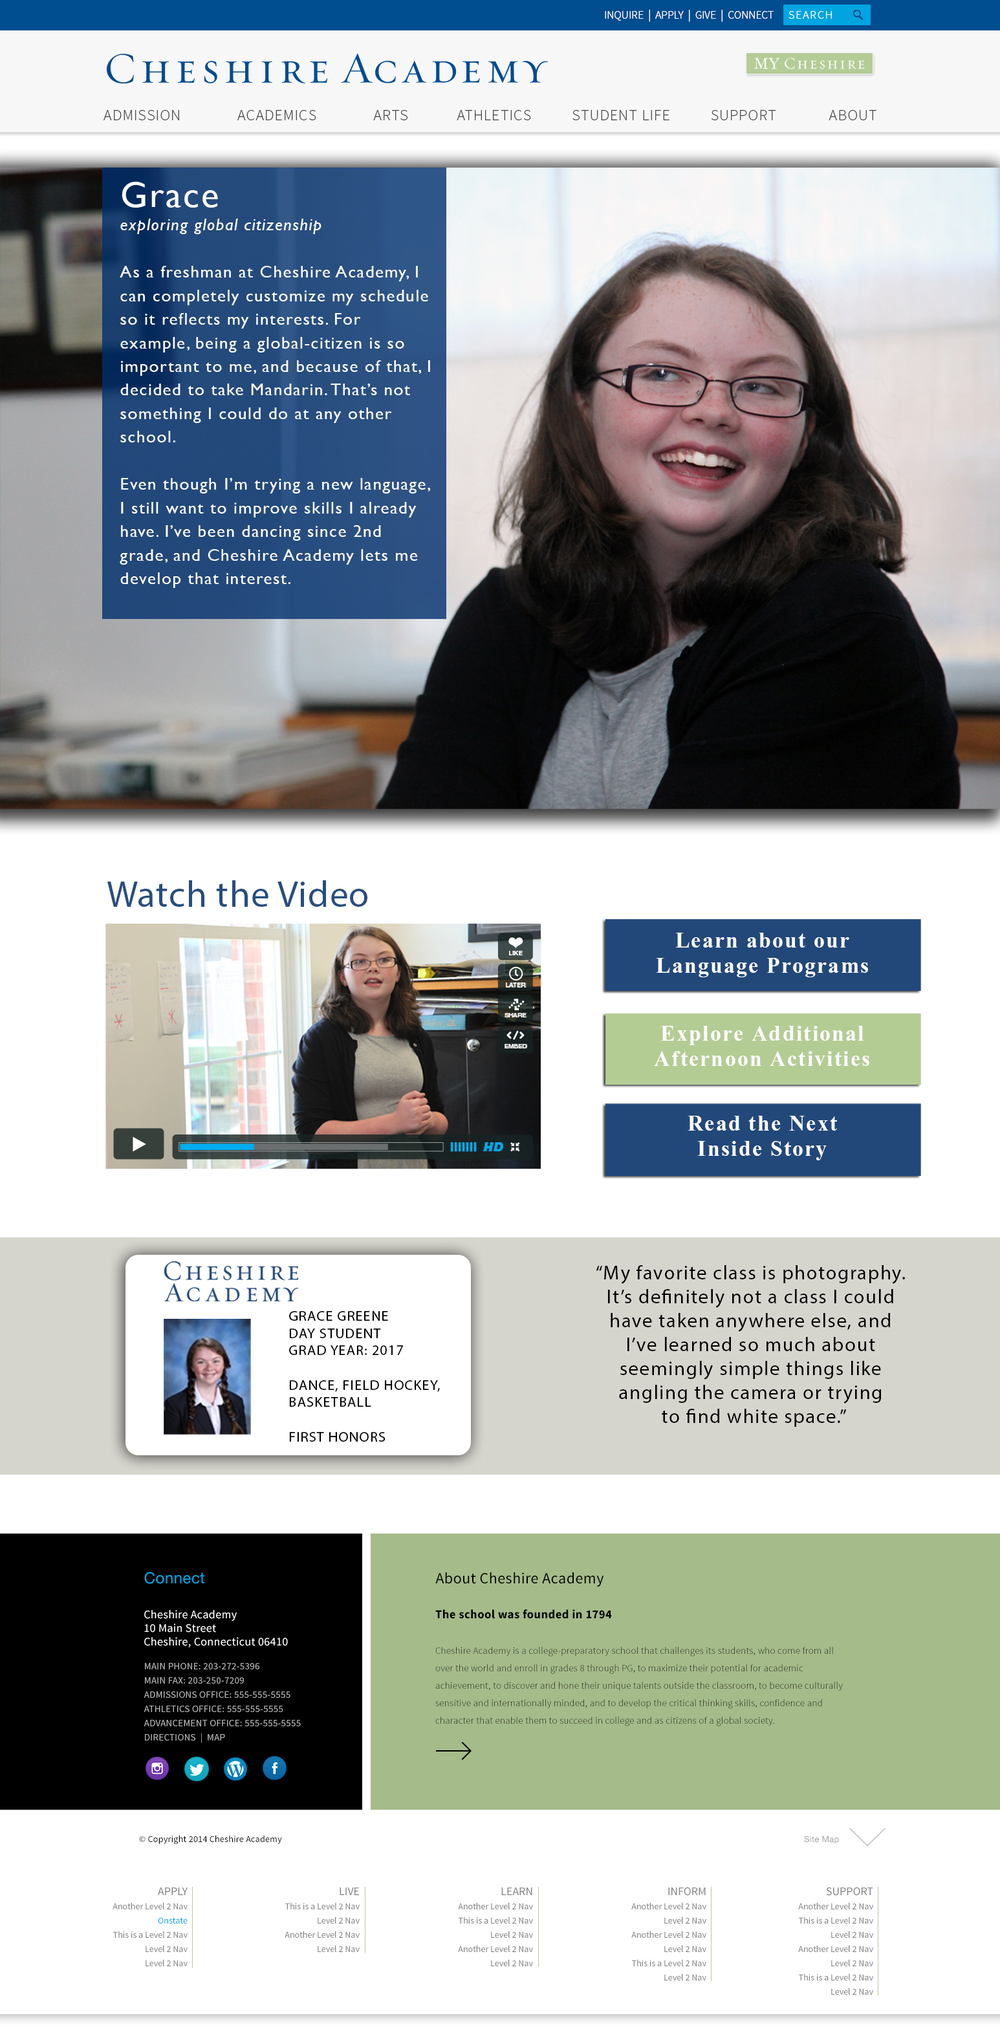 """Caption: This is one of our redesigned internal pages. We heard from families that they loved """"The Inside Story"""" viewbook insert with profiles of current students. We used that information to replicate The Inside Story on the web, creating dynamic profile pages with video, quotes, and links."""